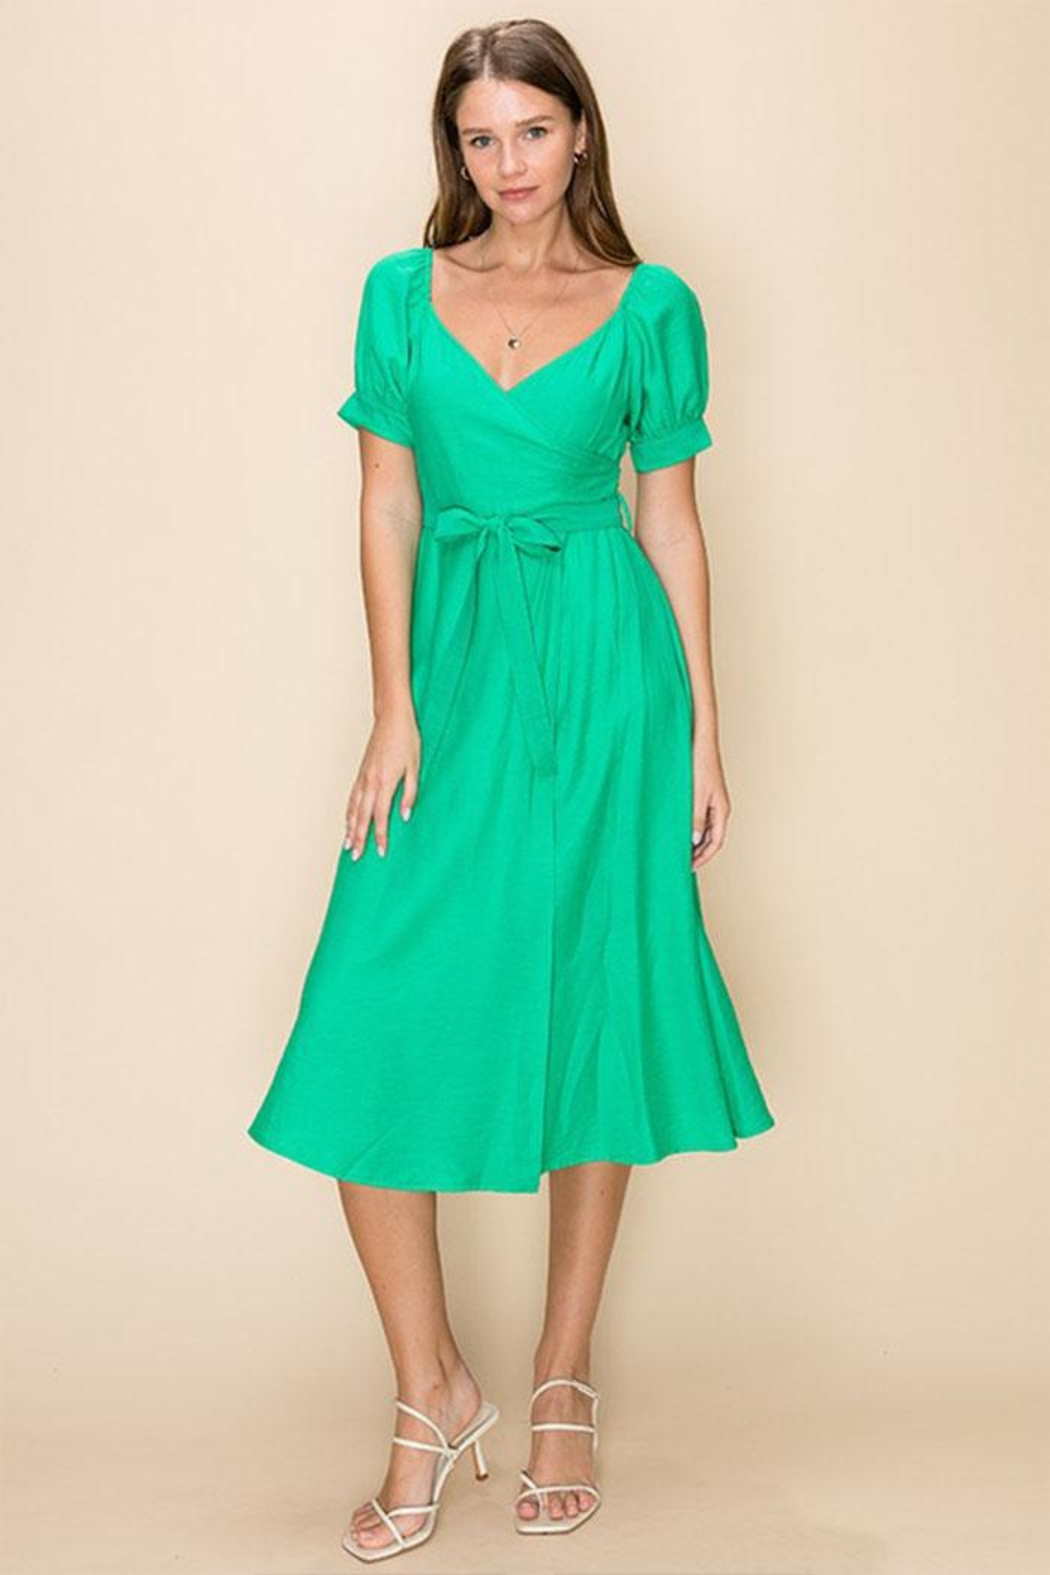 HYFVE Green Wrapped Midi-Dress - Main Image